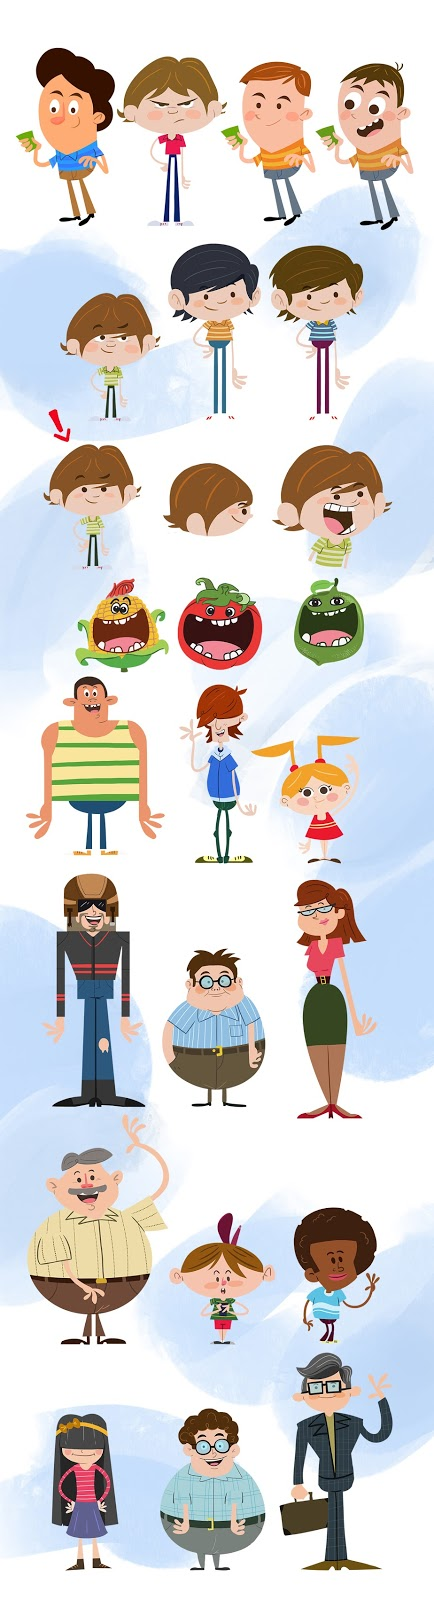 character design for a tv comercial by dakalister